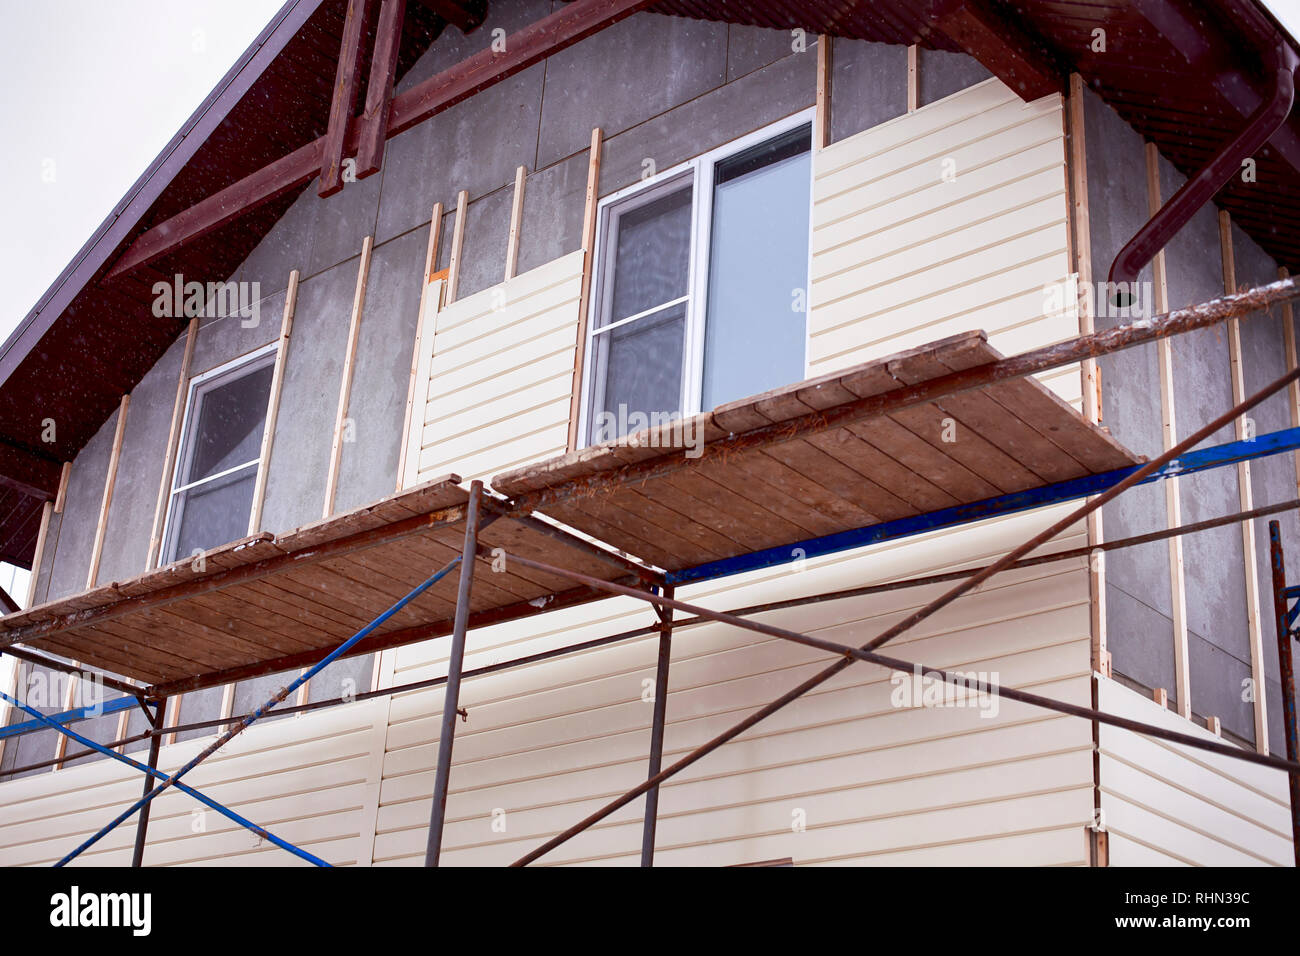 Scaffolding around house with beige siding covering walls. Construction site. - Stock Image